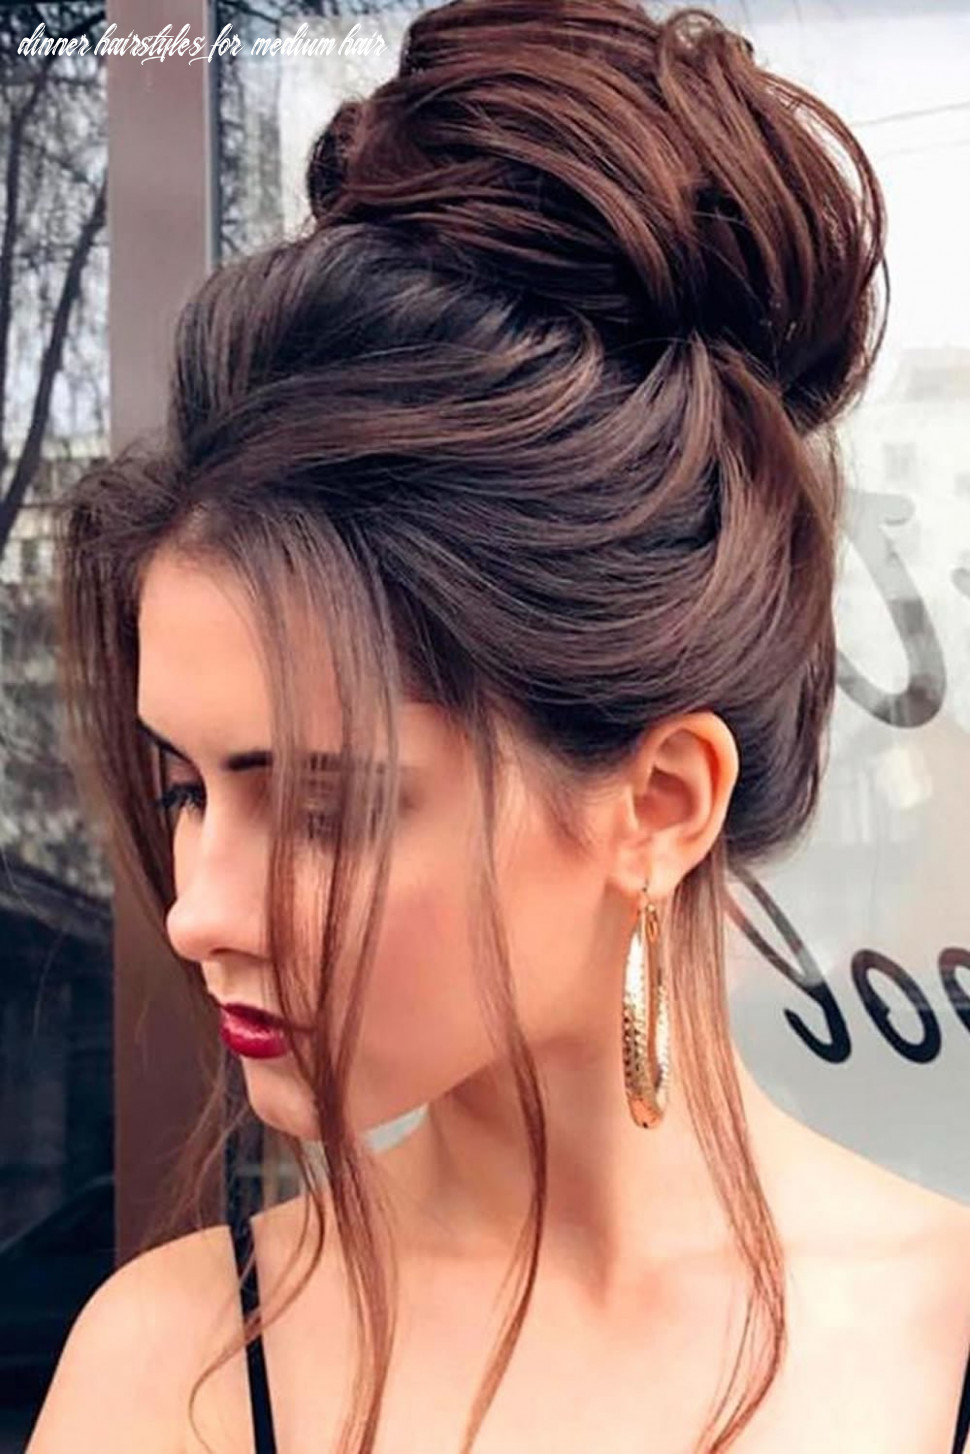 12 Awesome Party Hairstyles for Medium Hair